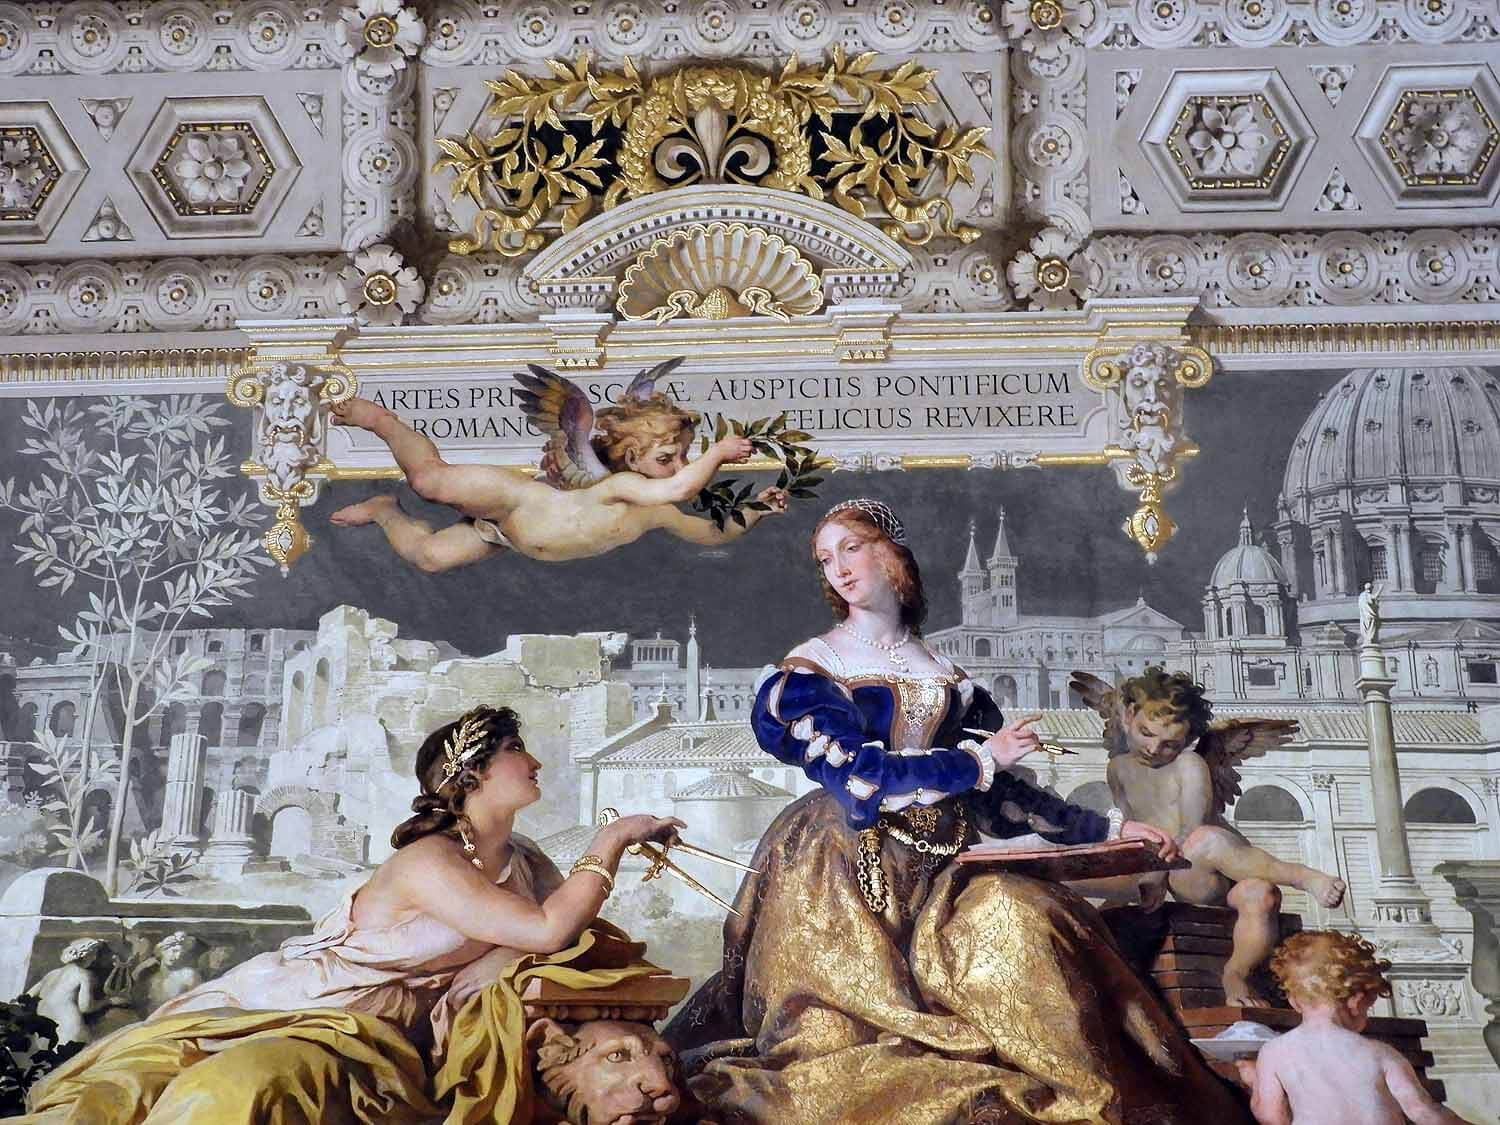 vatican-city-holy-see-italy-italia-rome-painting-details.jpg